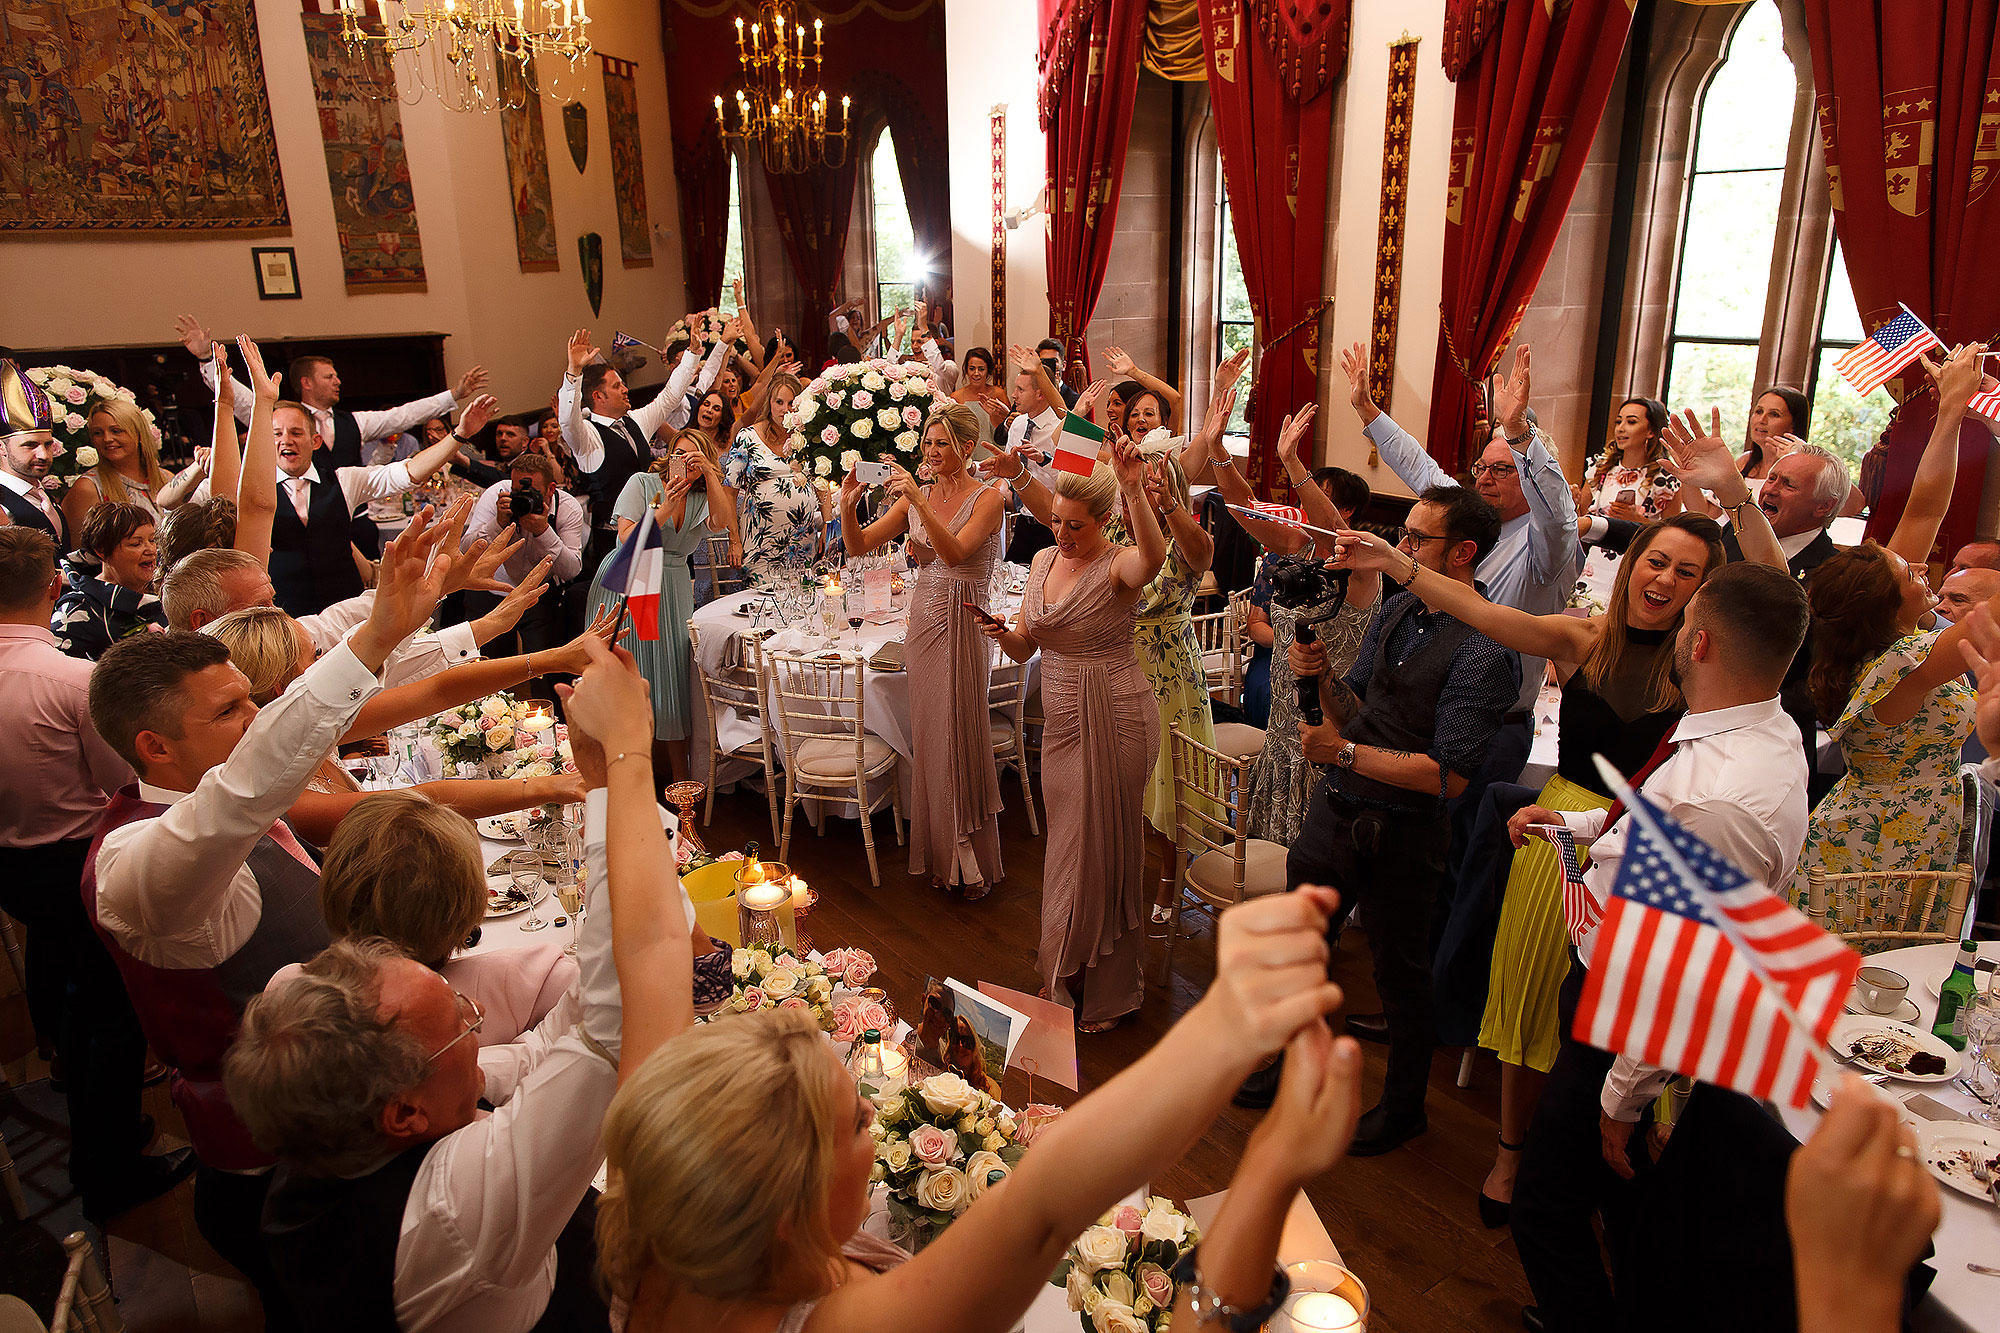 Full wedding party dancing, singing and waving flags during wedding reception of singing waiters | Peckforton Castle Wedding by Toni Darcy Photography